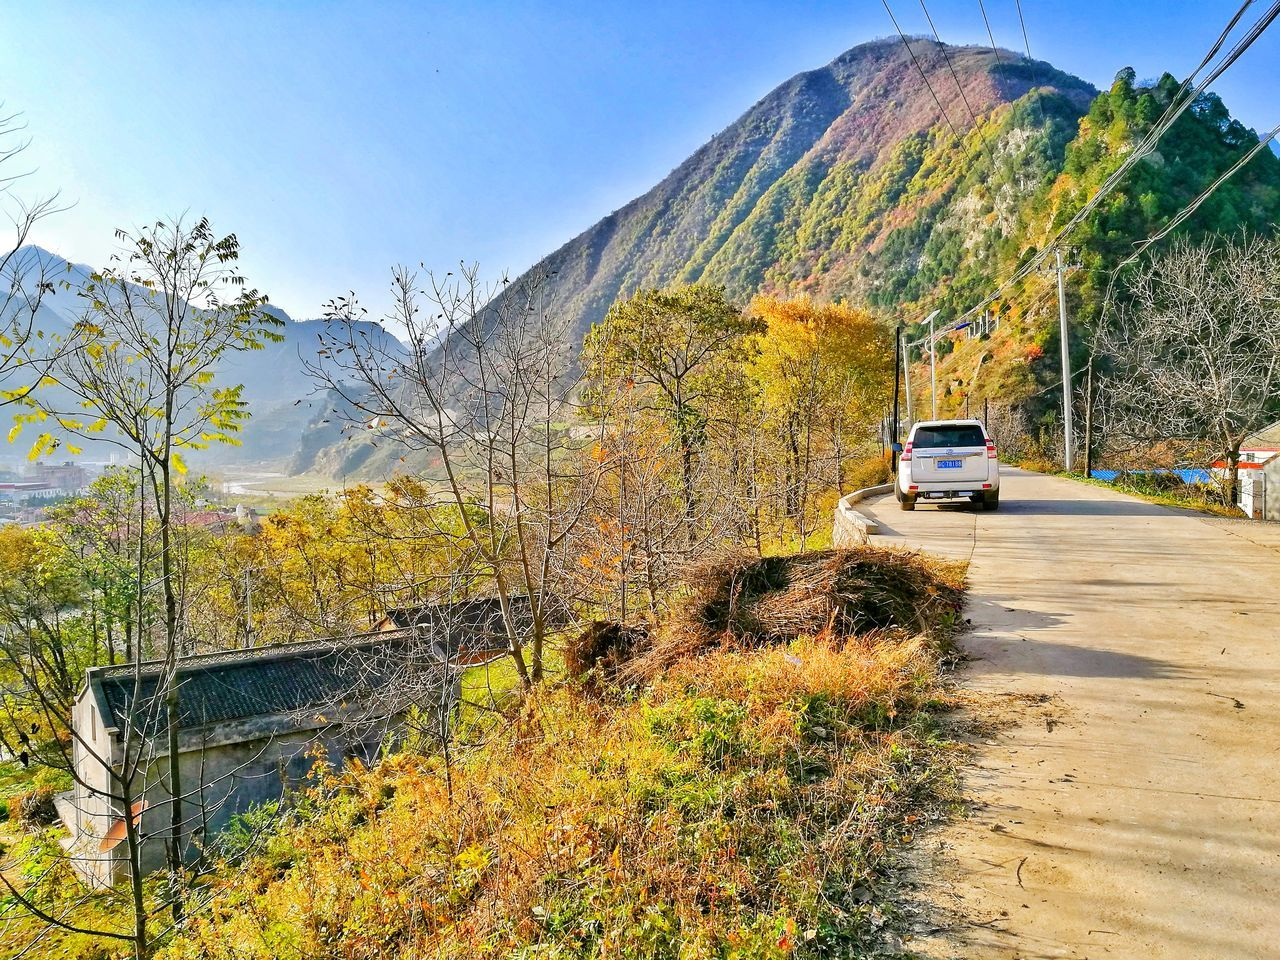 mountain, transportation, road, car, land vehicle, day, mode of transport, no people, tree, outdoors, scenics, mountain range, nature, beauty in nature, sky